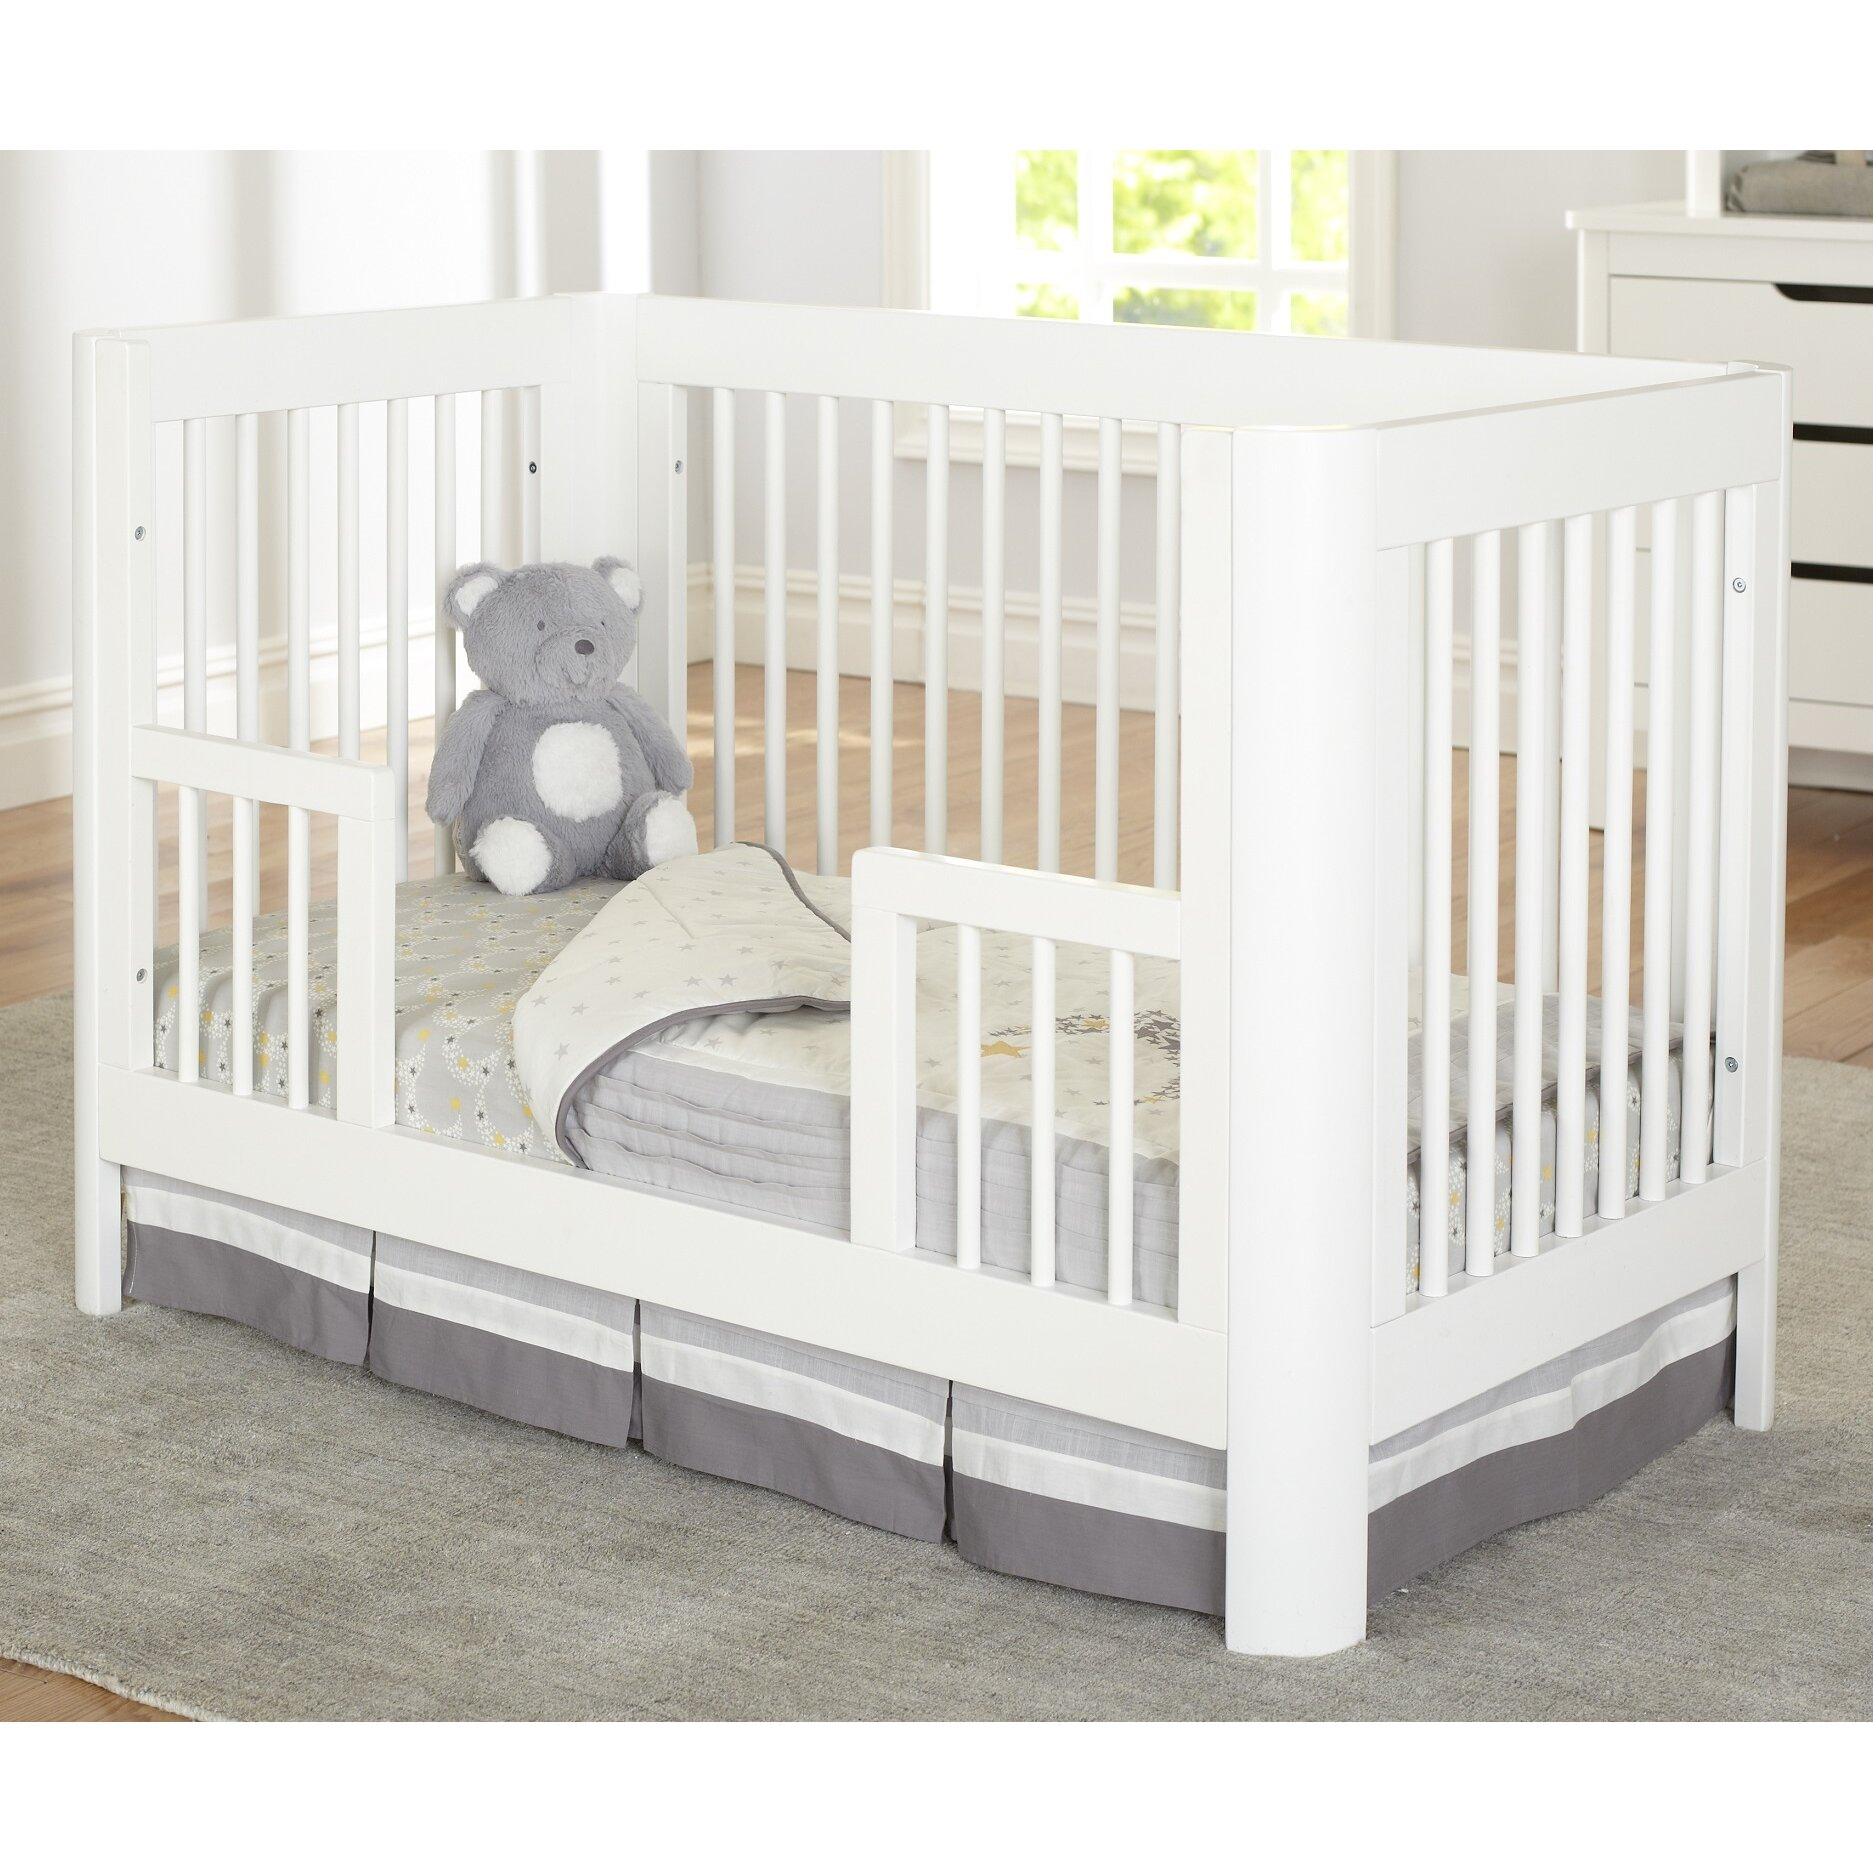 Sorelle Crib Guard Rail Baby Crib Design Inspiration